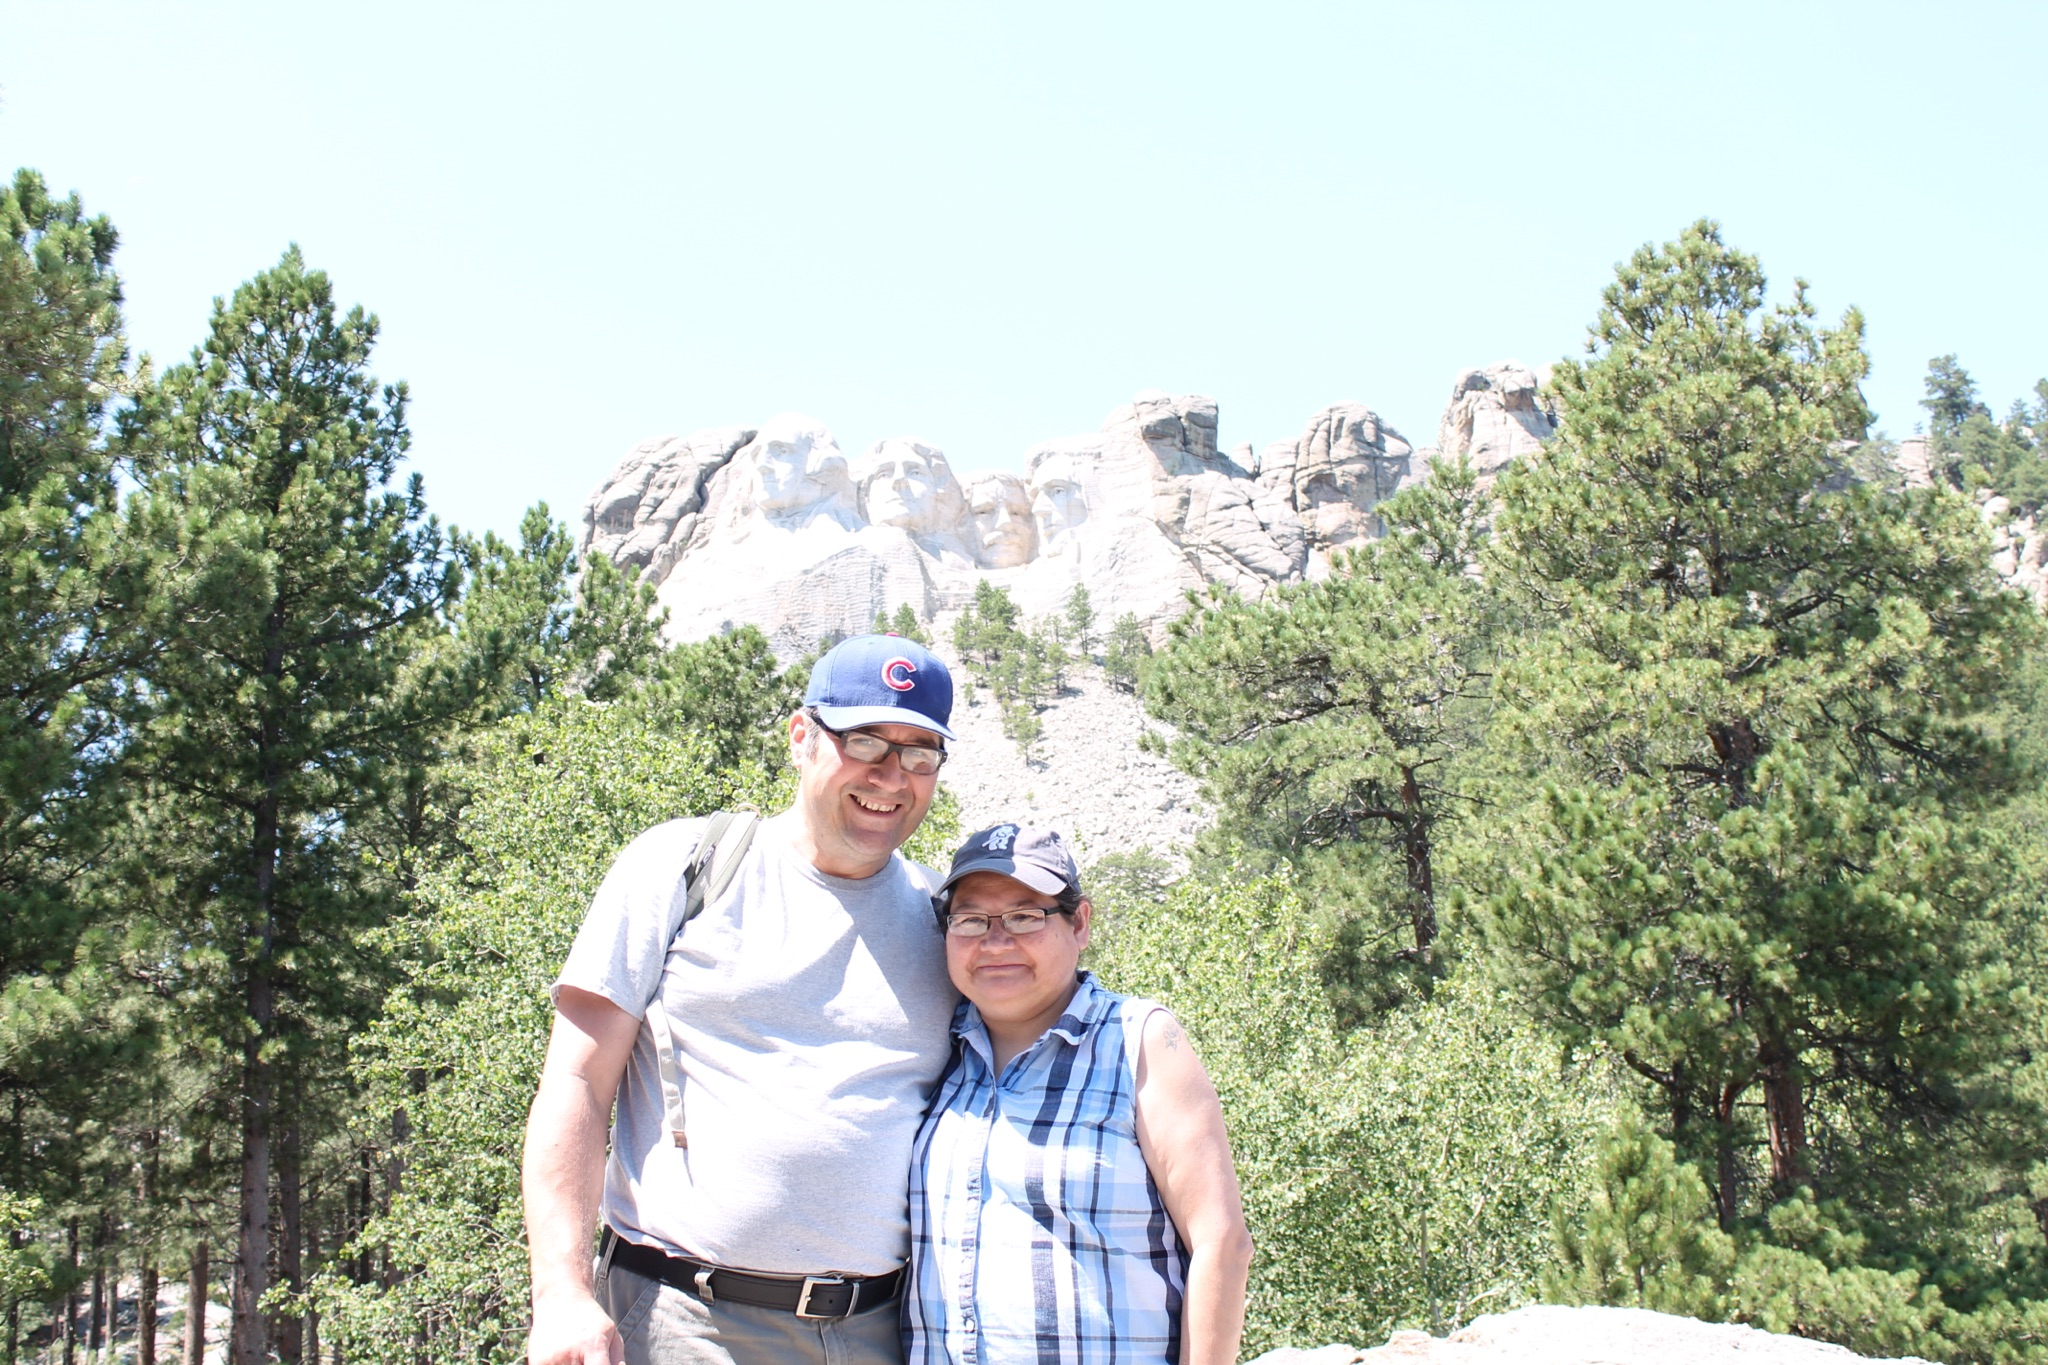 A picture of Peggy Castillo and her husband, USFS Northern Research Station Forester Paul Castillo